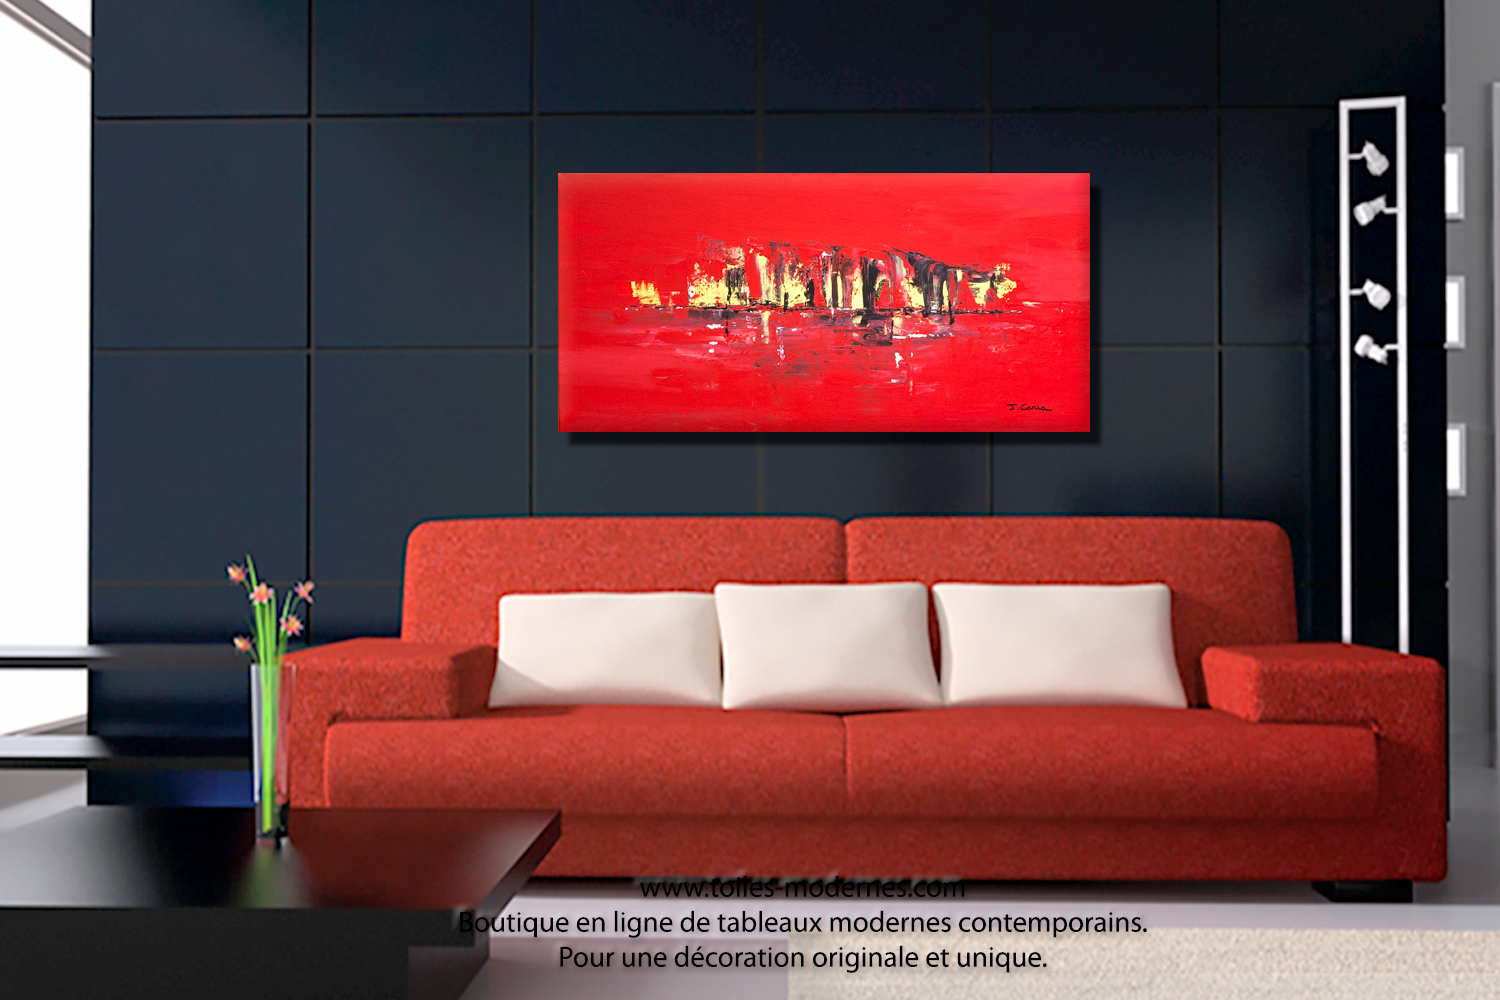 Tableau mer contemporain rouge format panoramique grandes dimensions ...